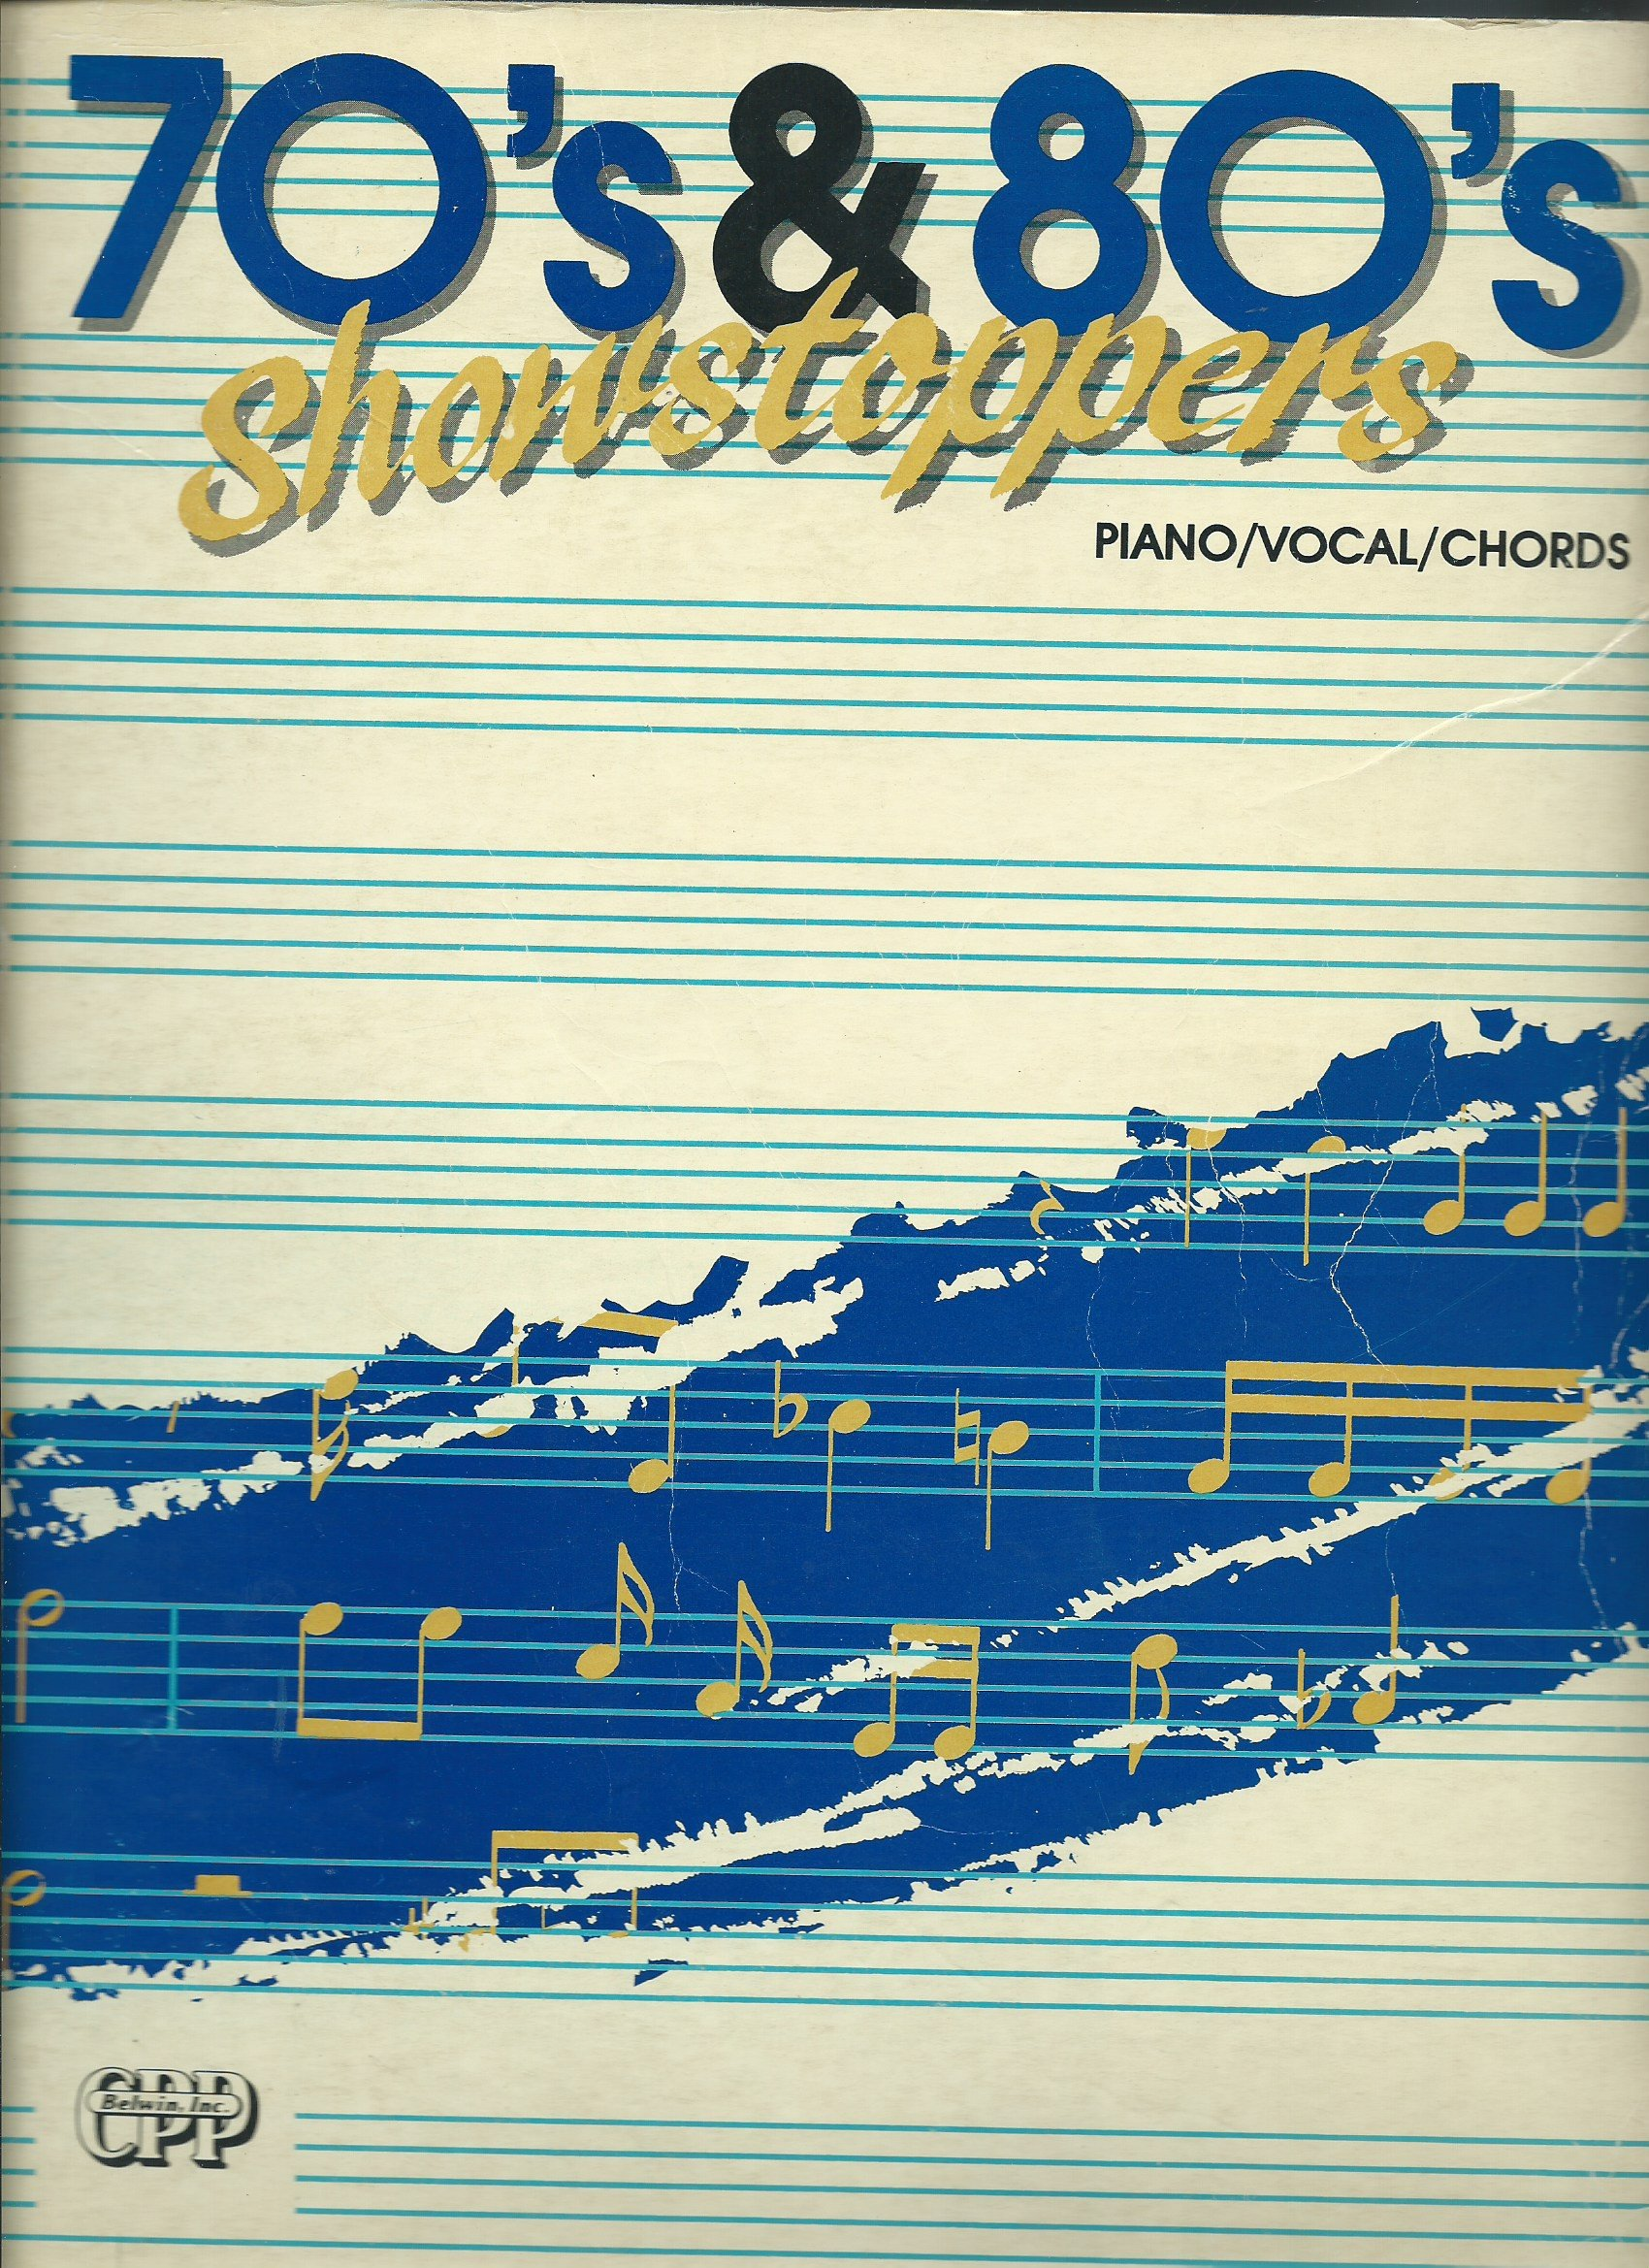 70s 80s Showstoppers Songbook Piano Vocal Guitar Chords